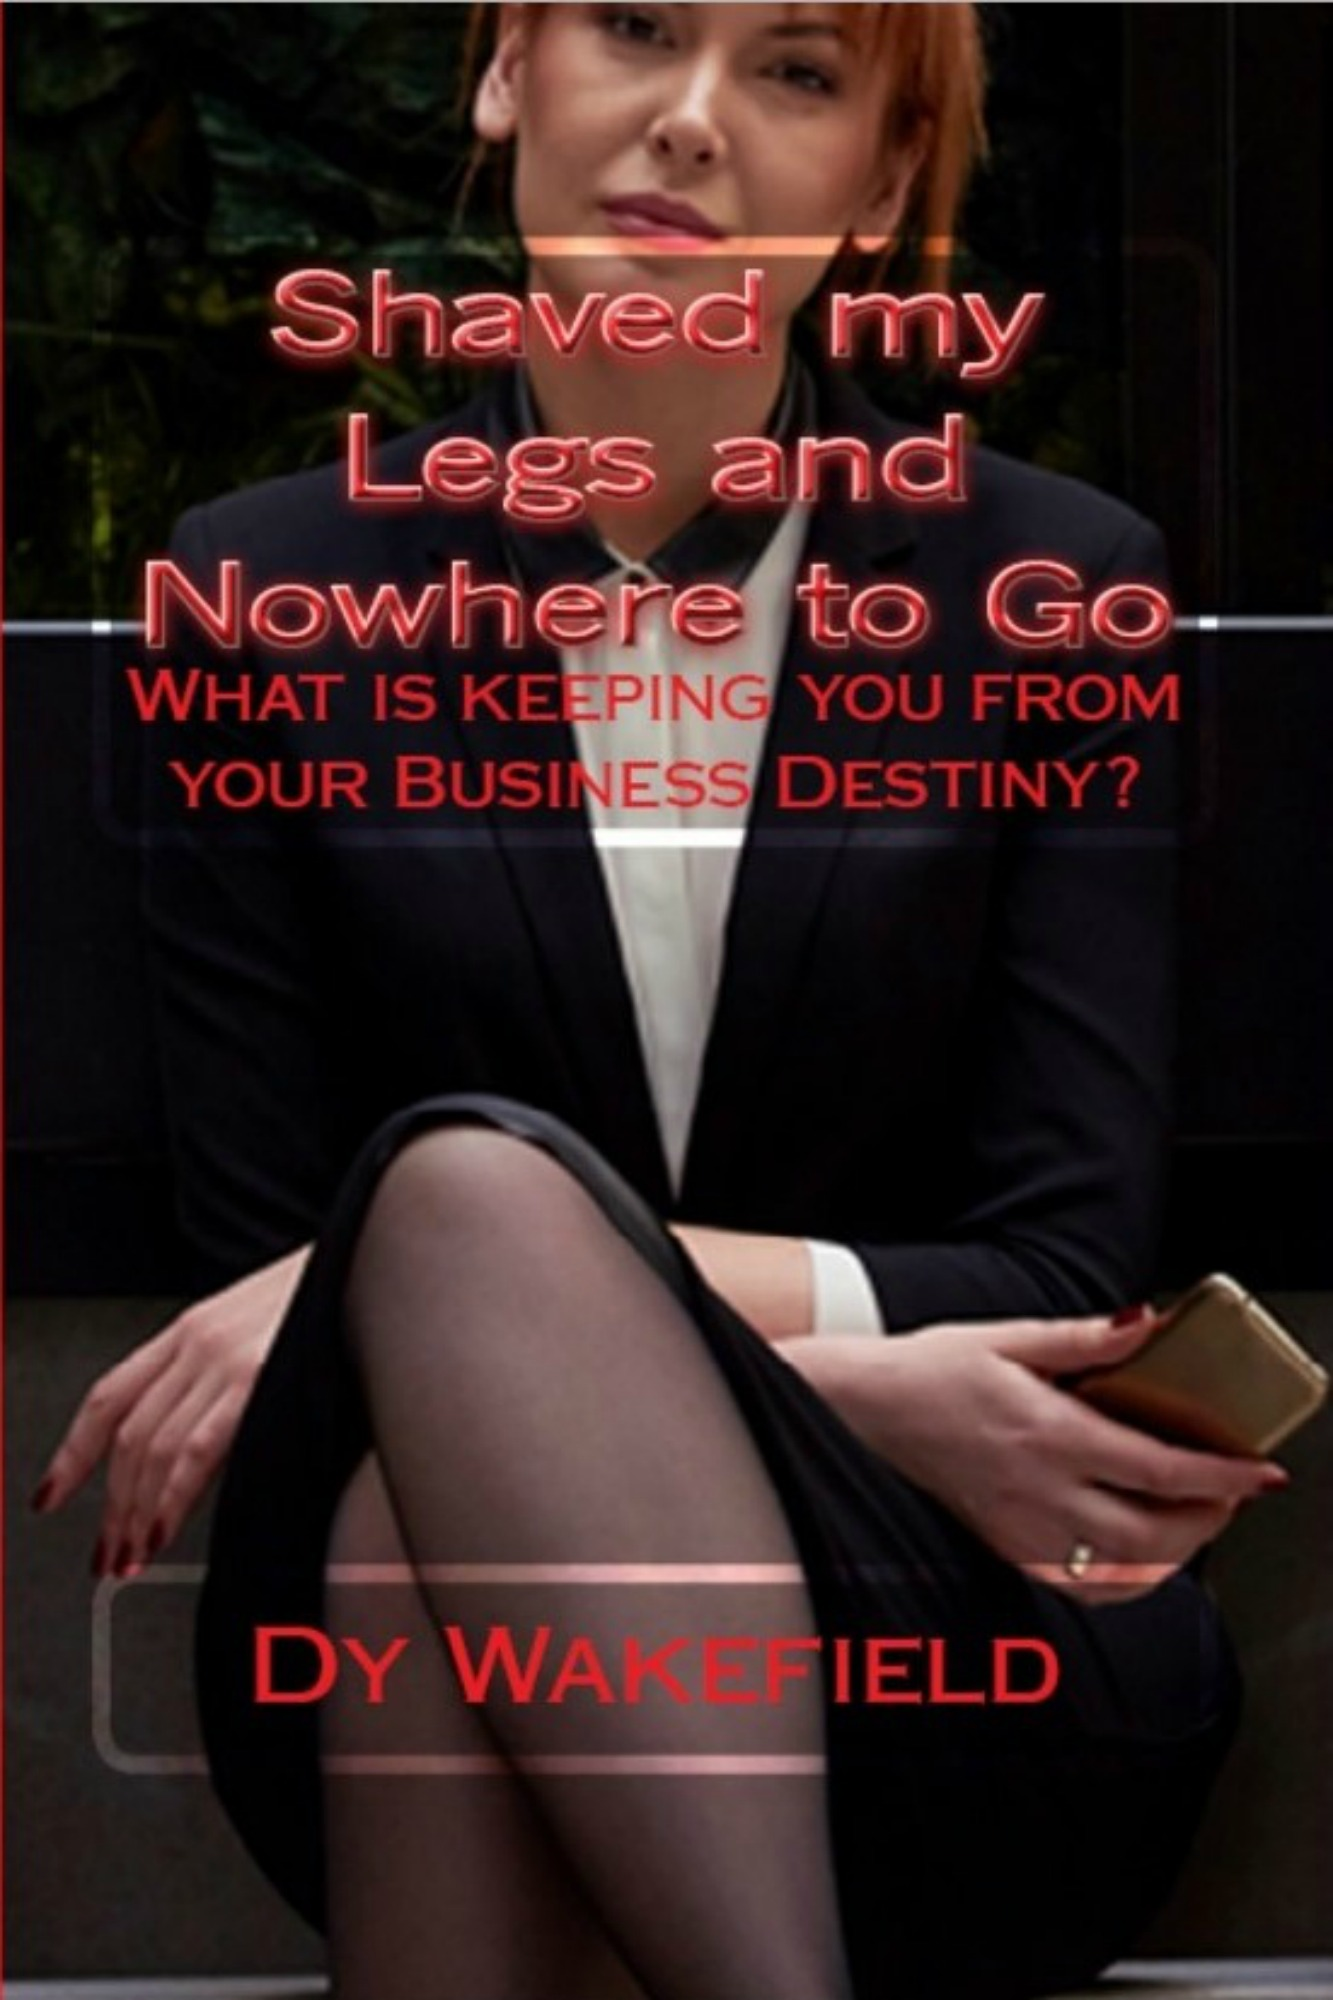 Shaved my legs and nowhere to go: what is keeping you from your business destiny?